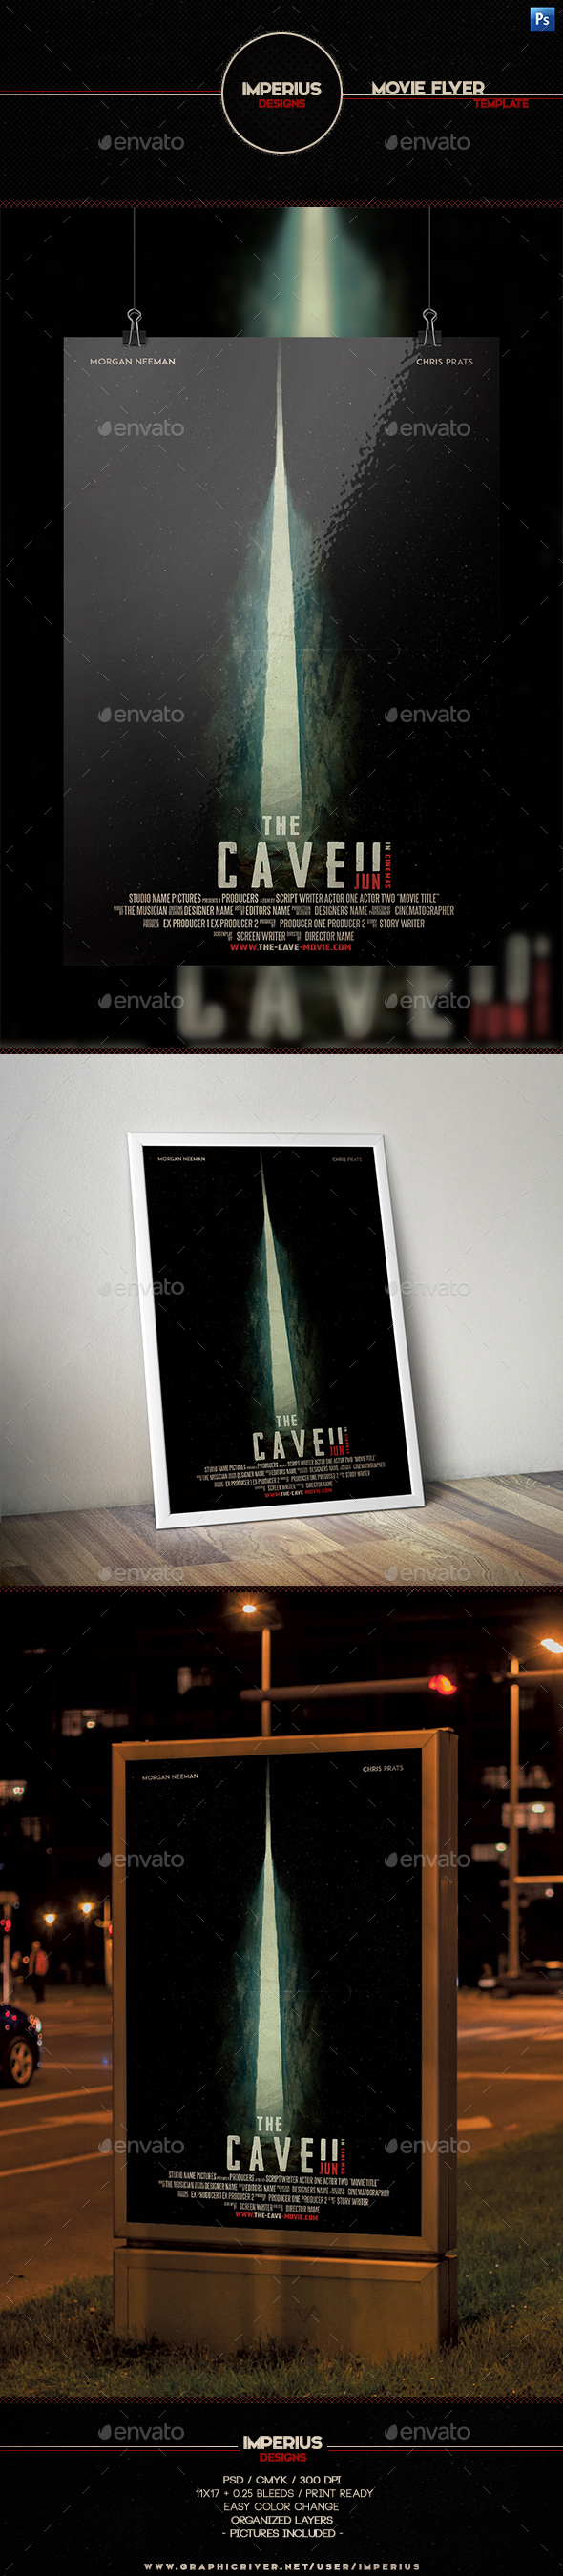 The Cave Movie Flyer - Flyers Print Templates